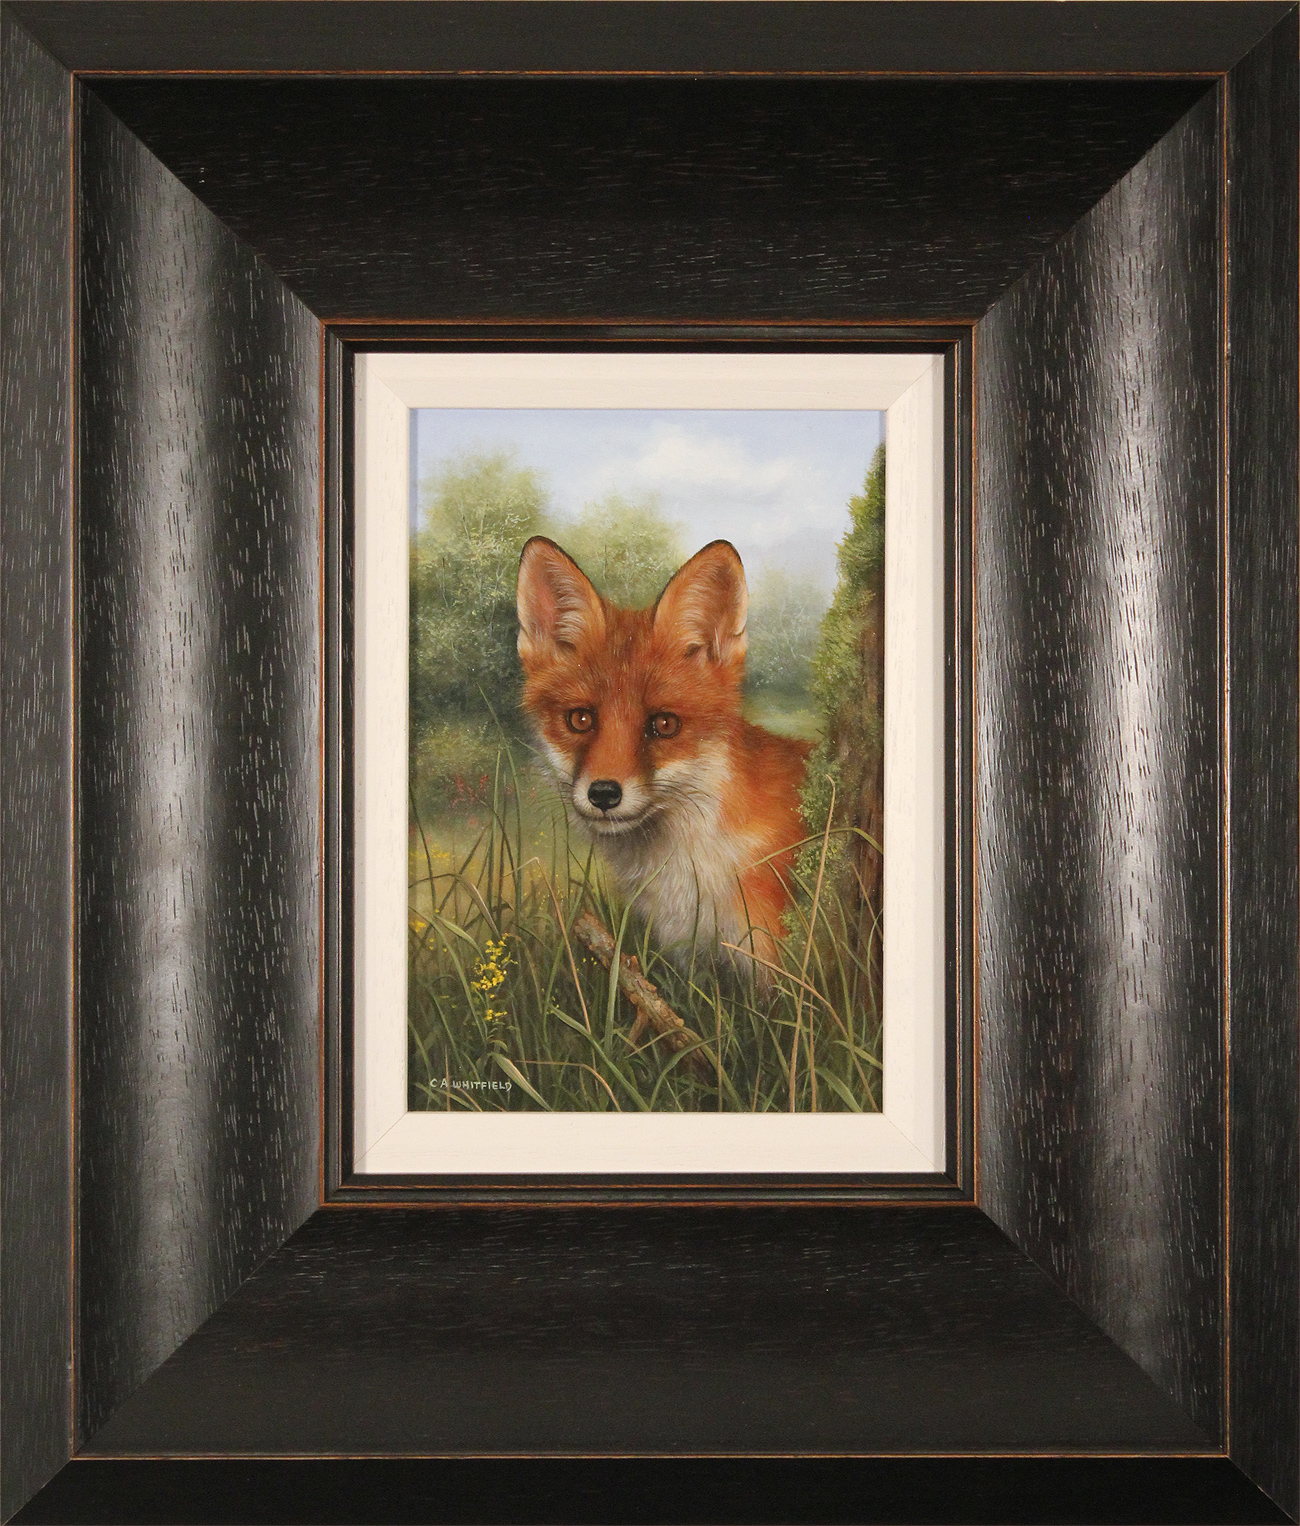 Carl Whitfield, Original oil painting on panel, Fox Cub, click to enlarge